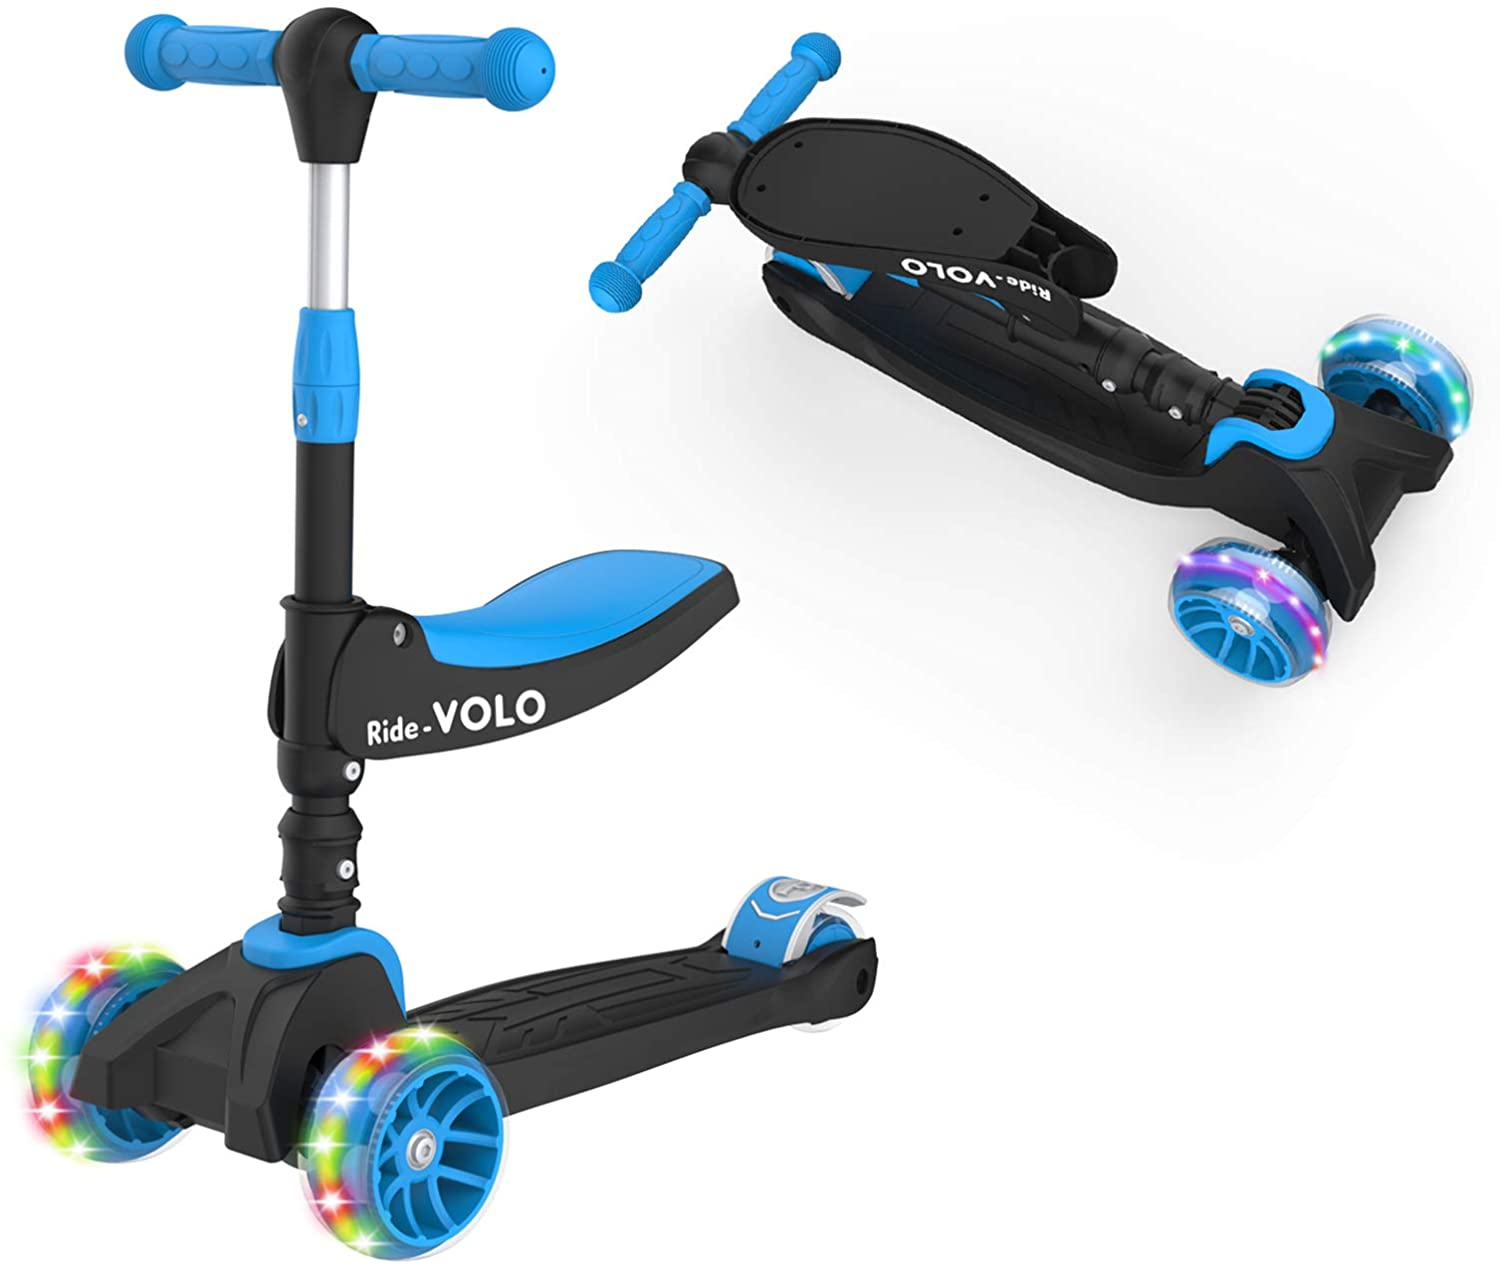 Amazon: 2-in-1 Kick Scooter with Removable Seat, Just $30.99 (Reg $59.99 ) after code and coupon!